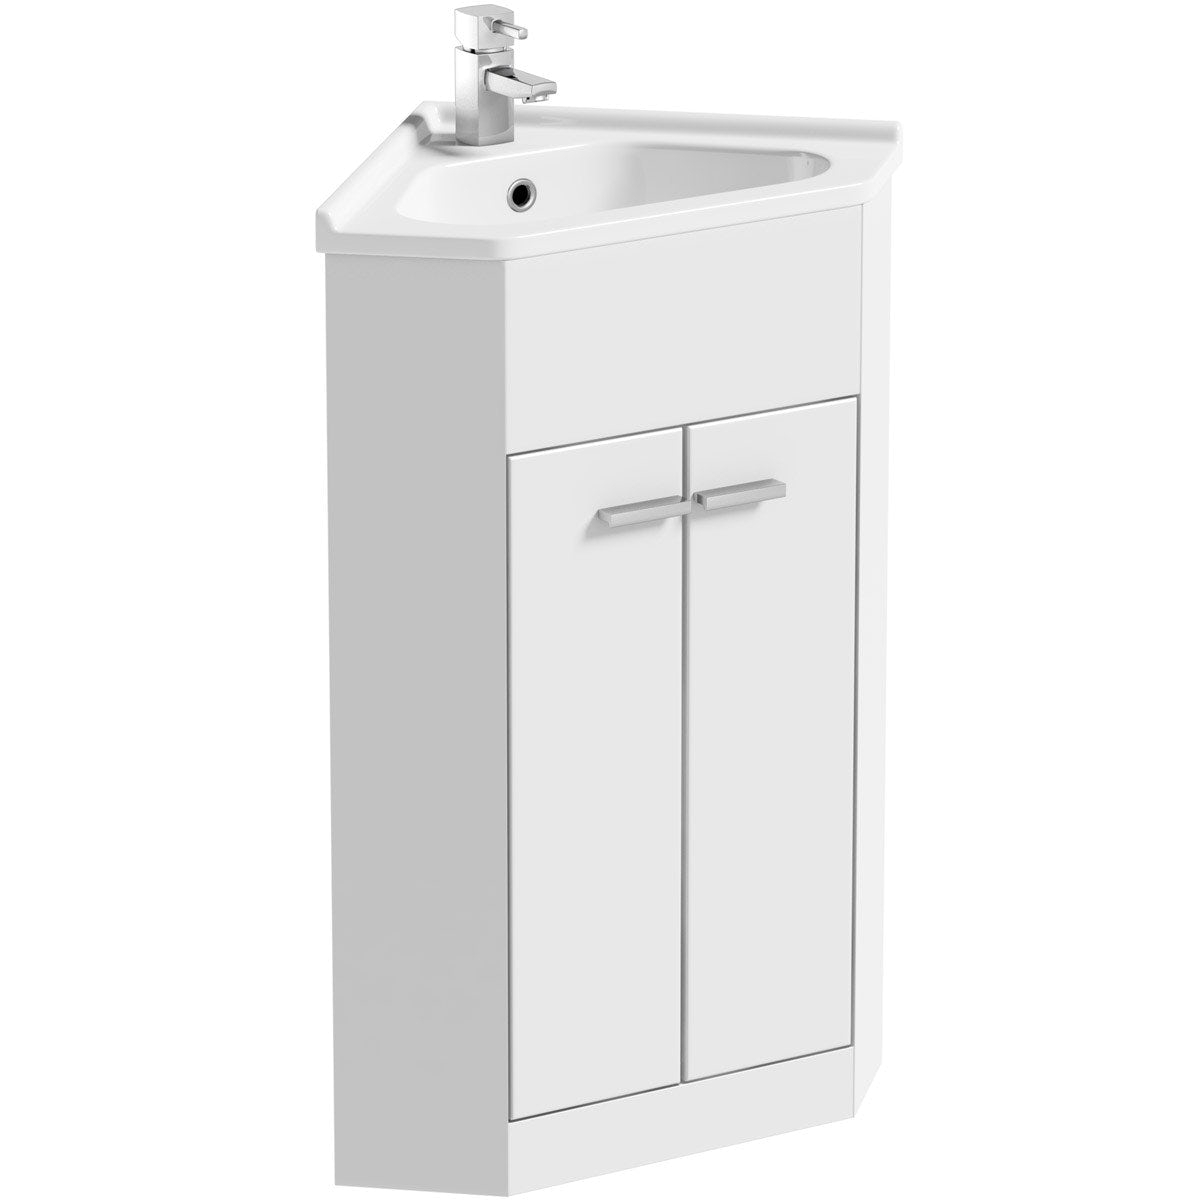 Orchard Compact White Cloakroom Suite With Square Close